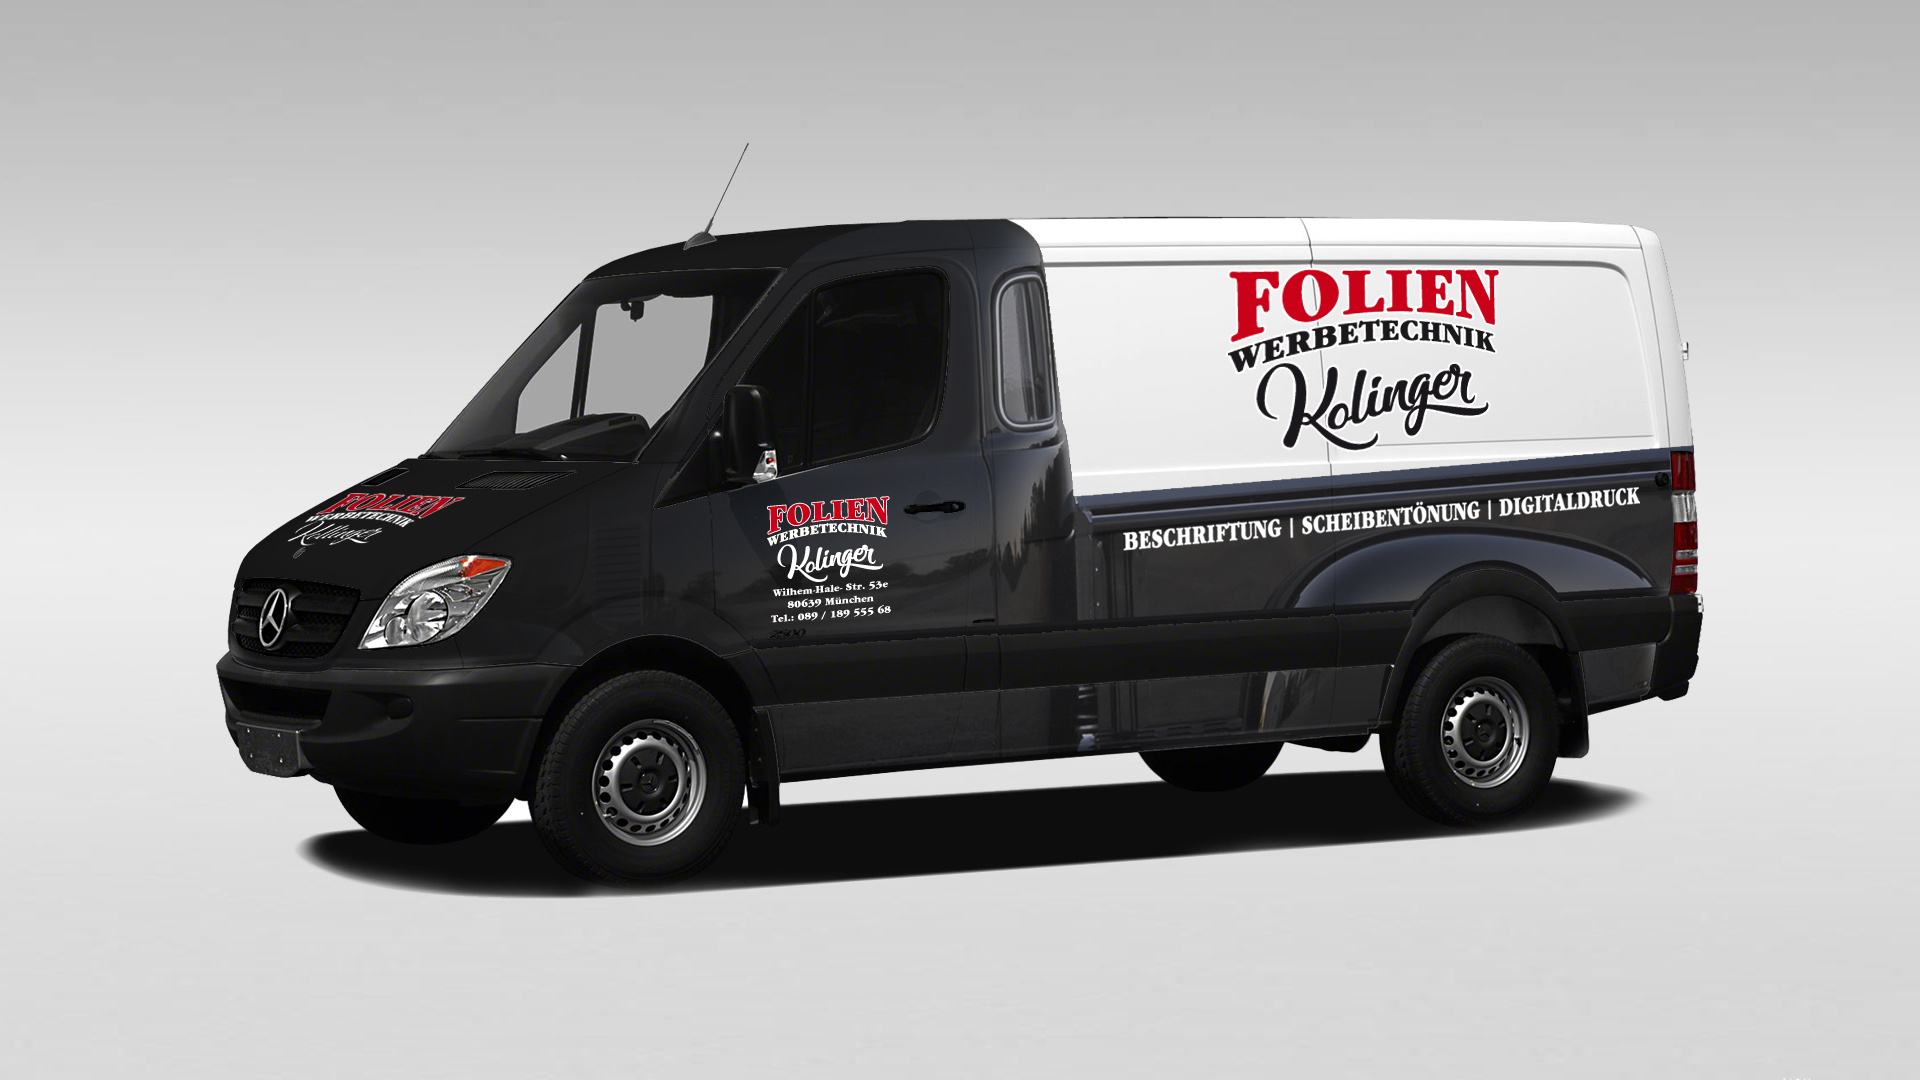 Folien Werbetechnik Kollinger - Folierung Sprinter in Hot Rod Pickup Optik